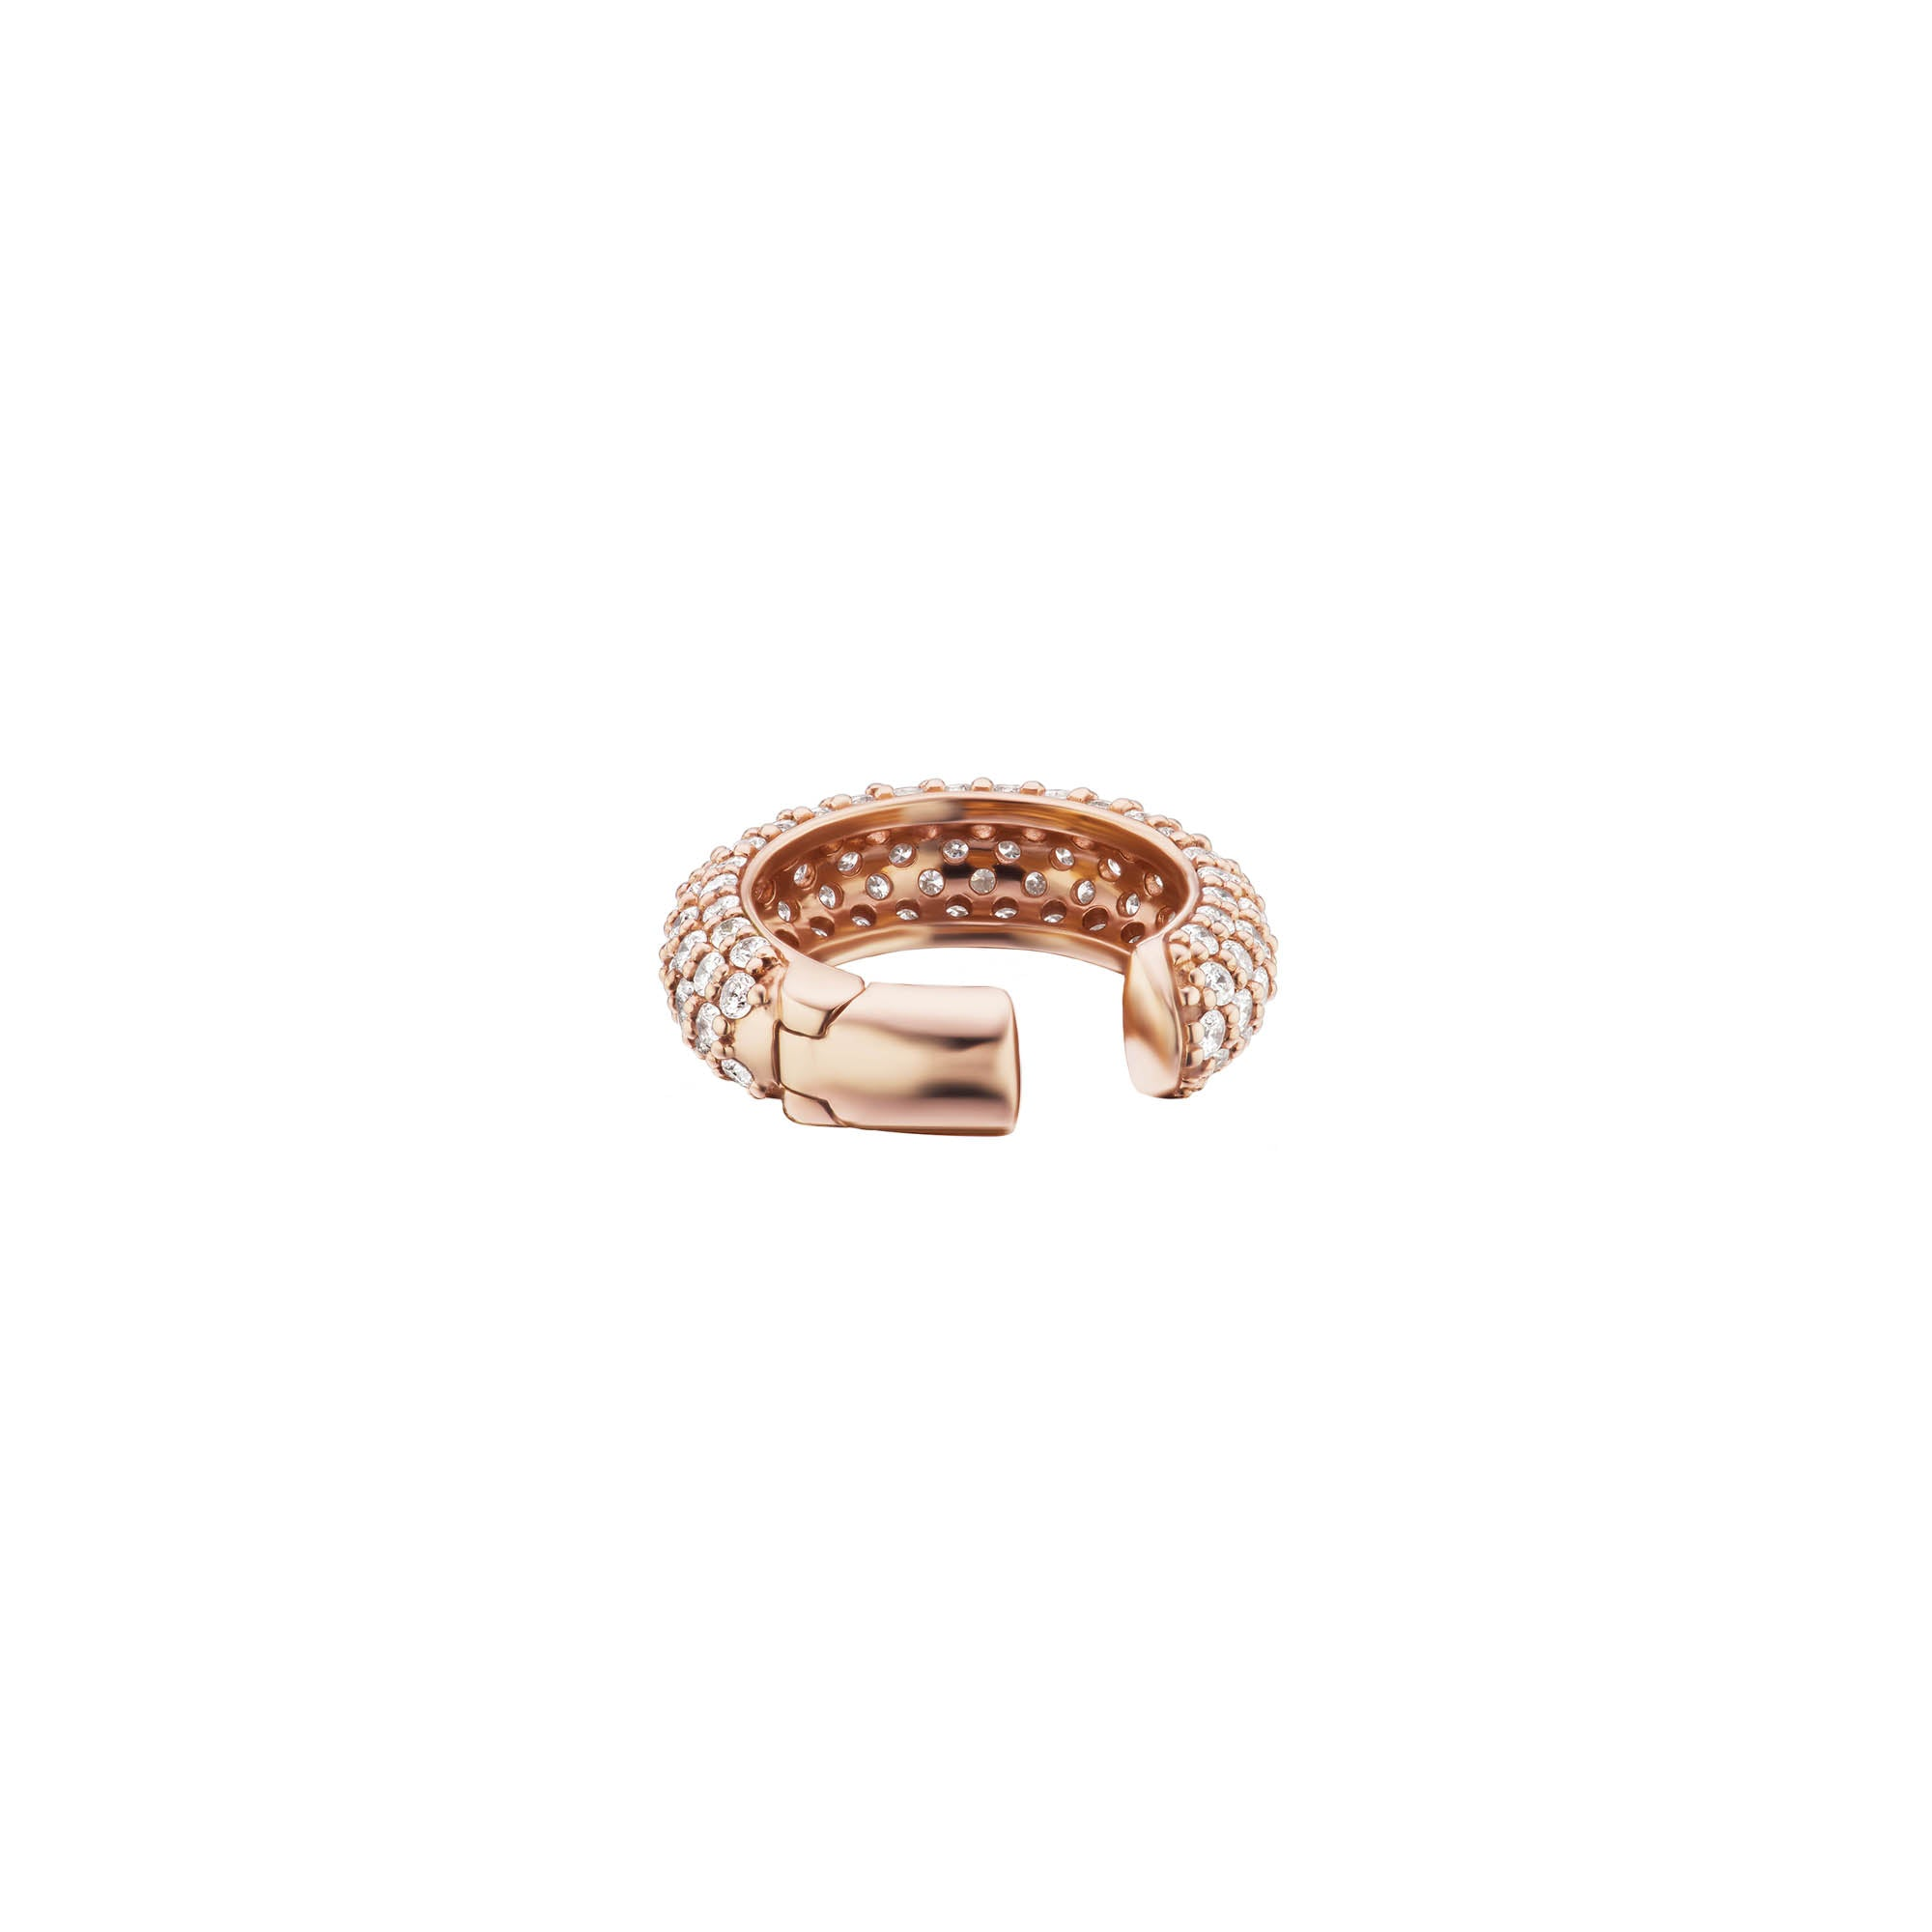 Altruist Bowery St Cuff - Rose Gold - Earrings - Broken English Jewelry